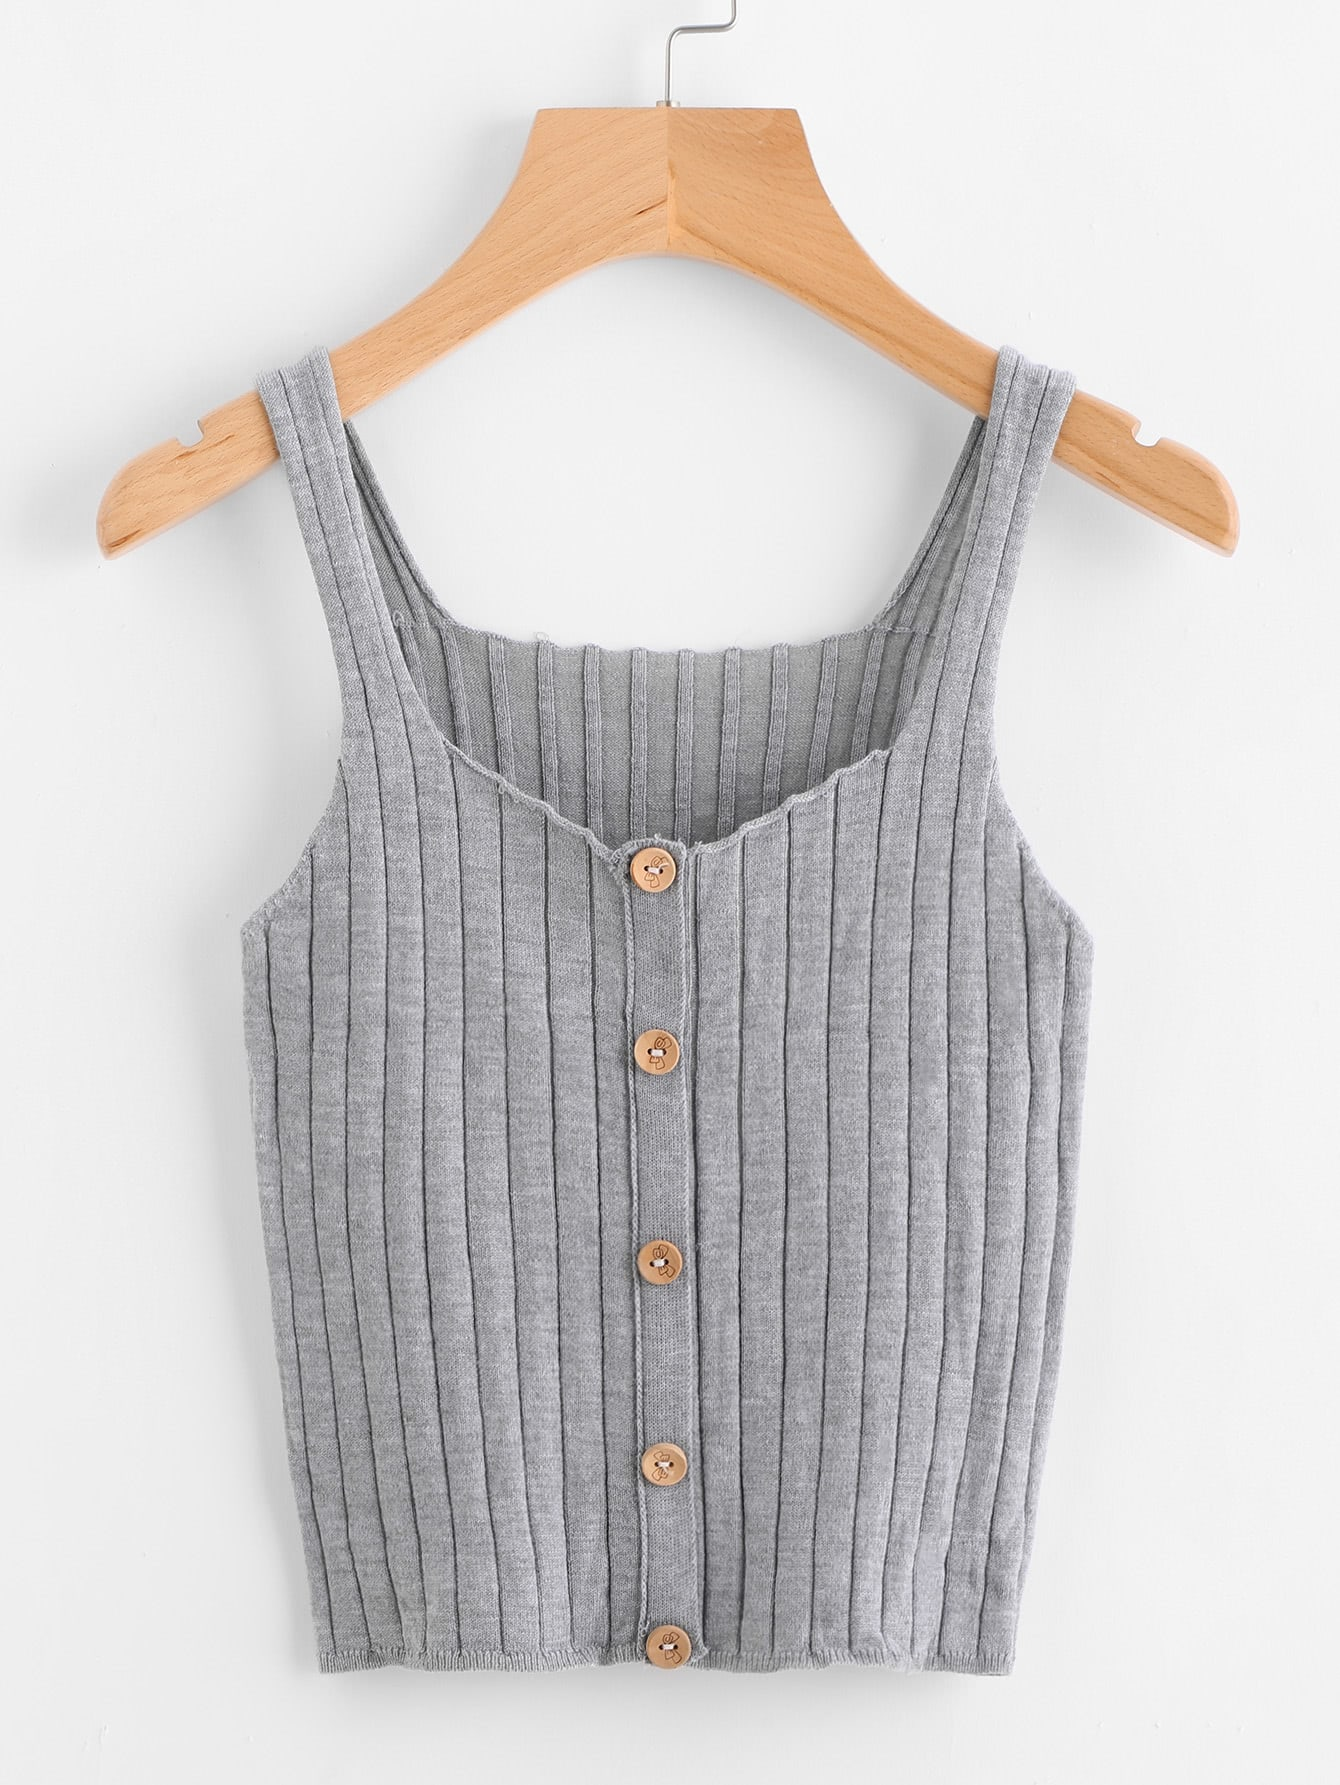 Button Front Rib Knit Top vest170712451